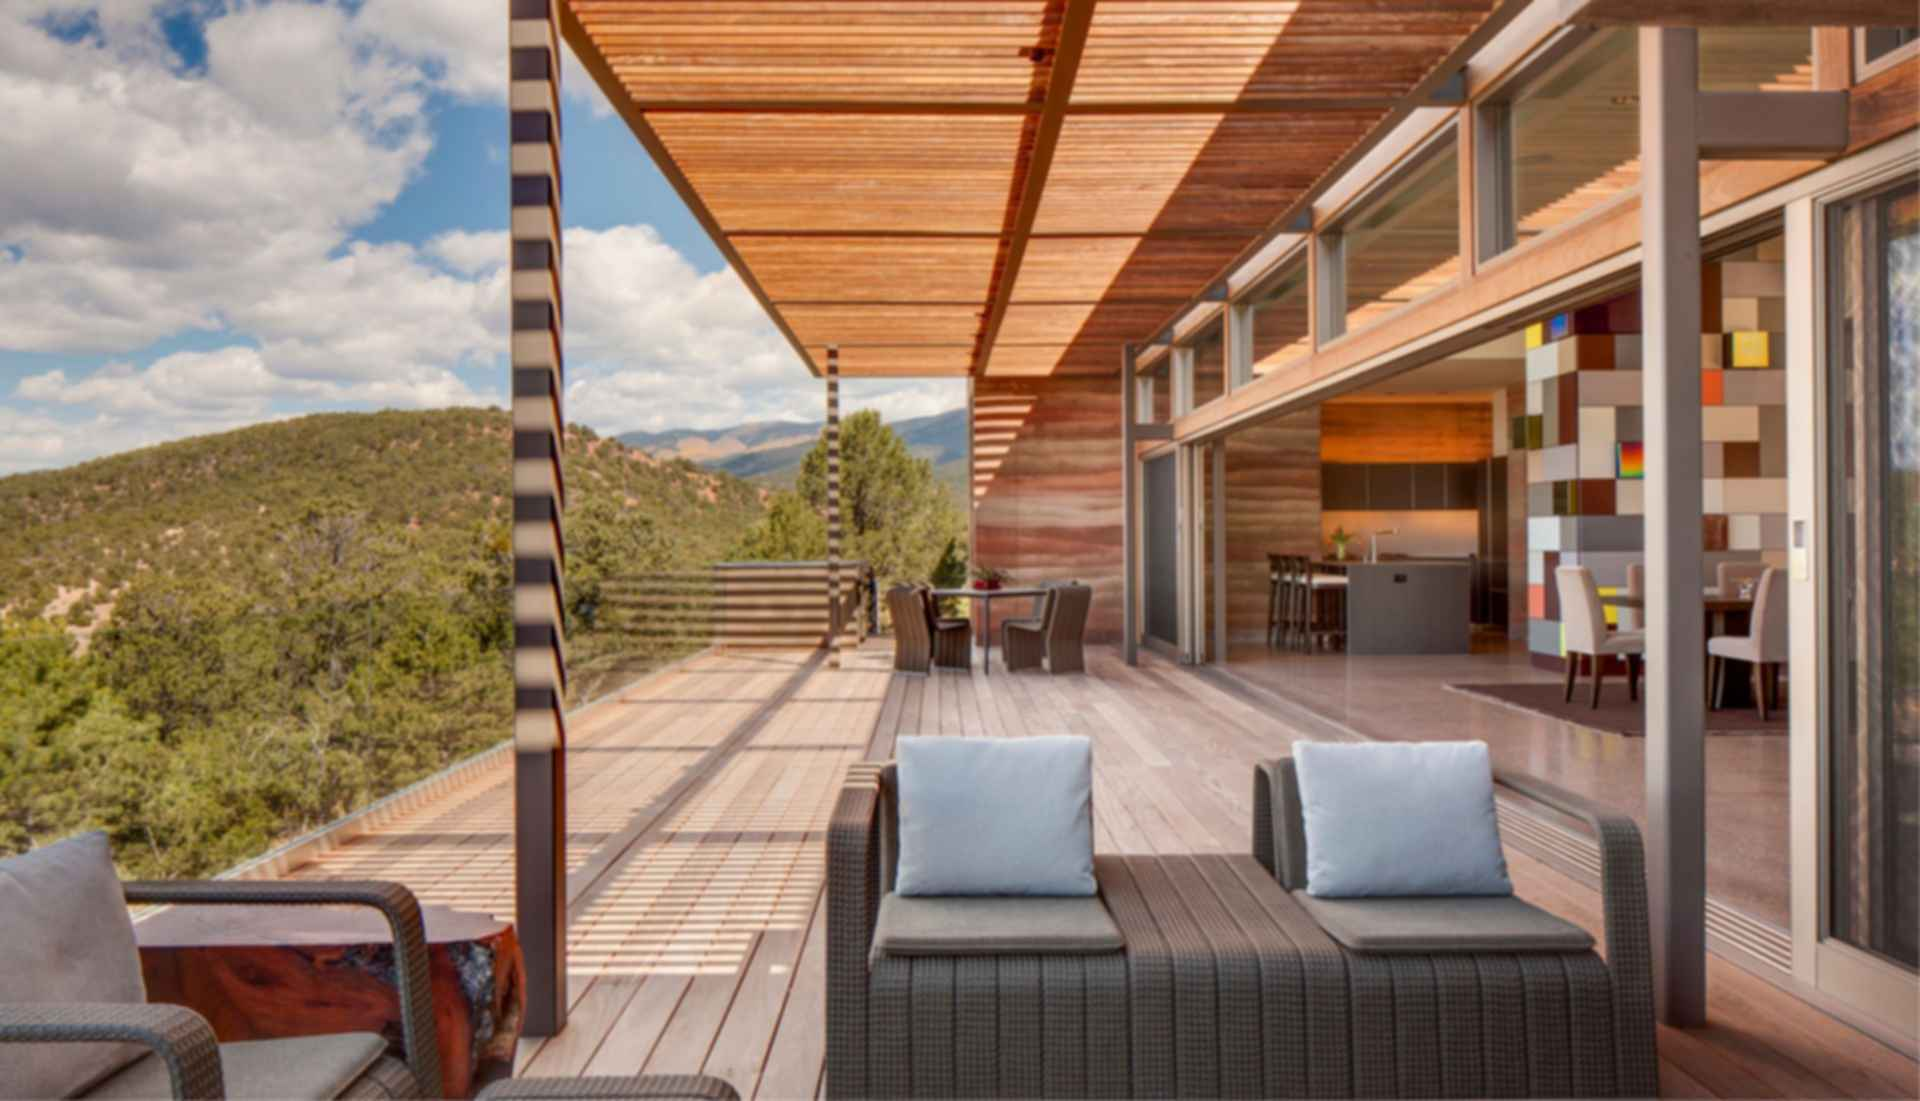 Torcasso Residence - Outdoor Area